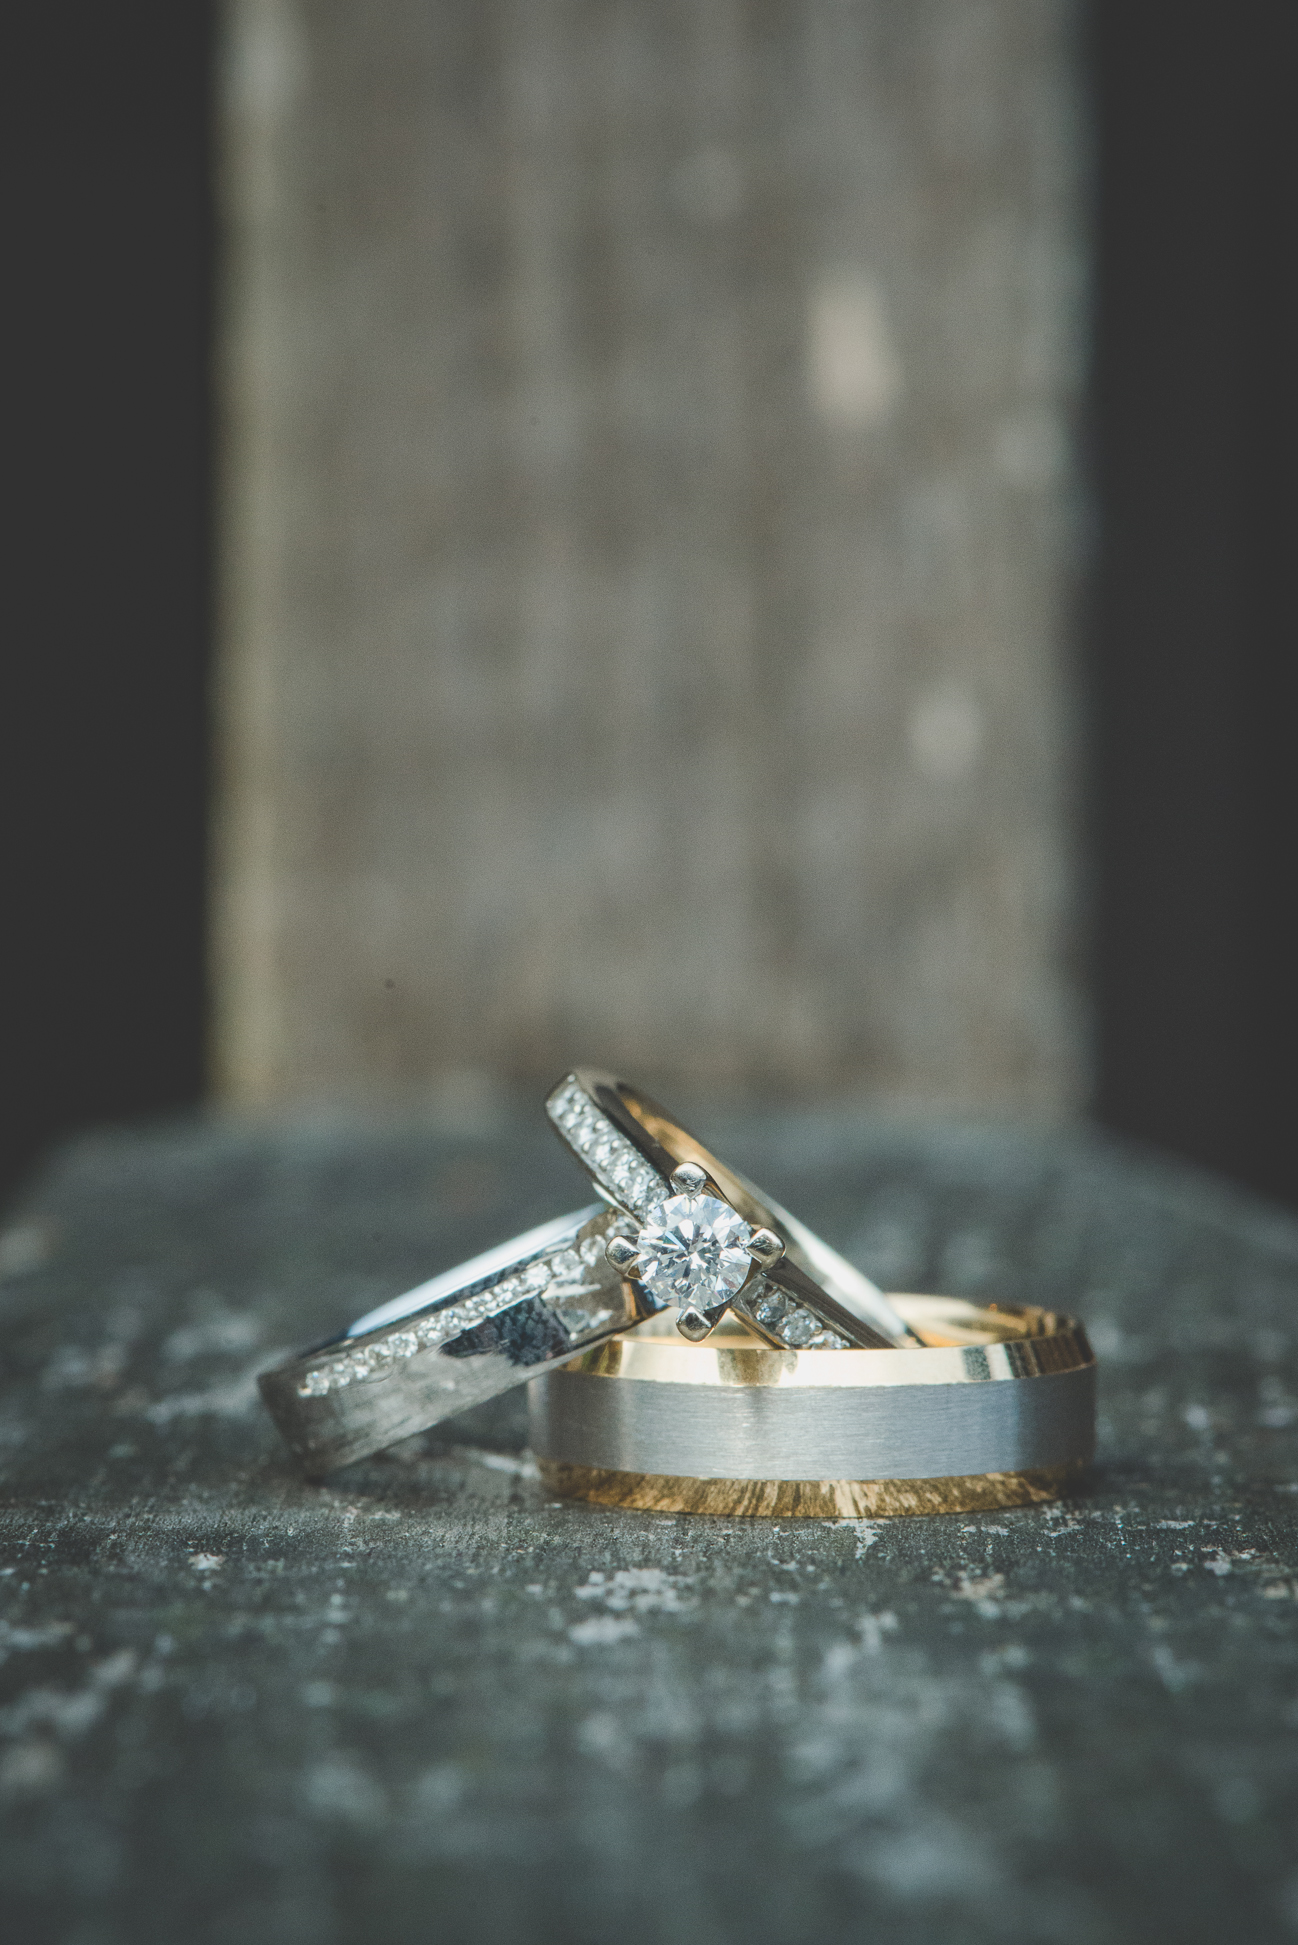 bride's wedding ring and engagement ring with groom's wedding band